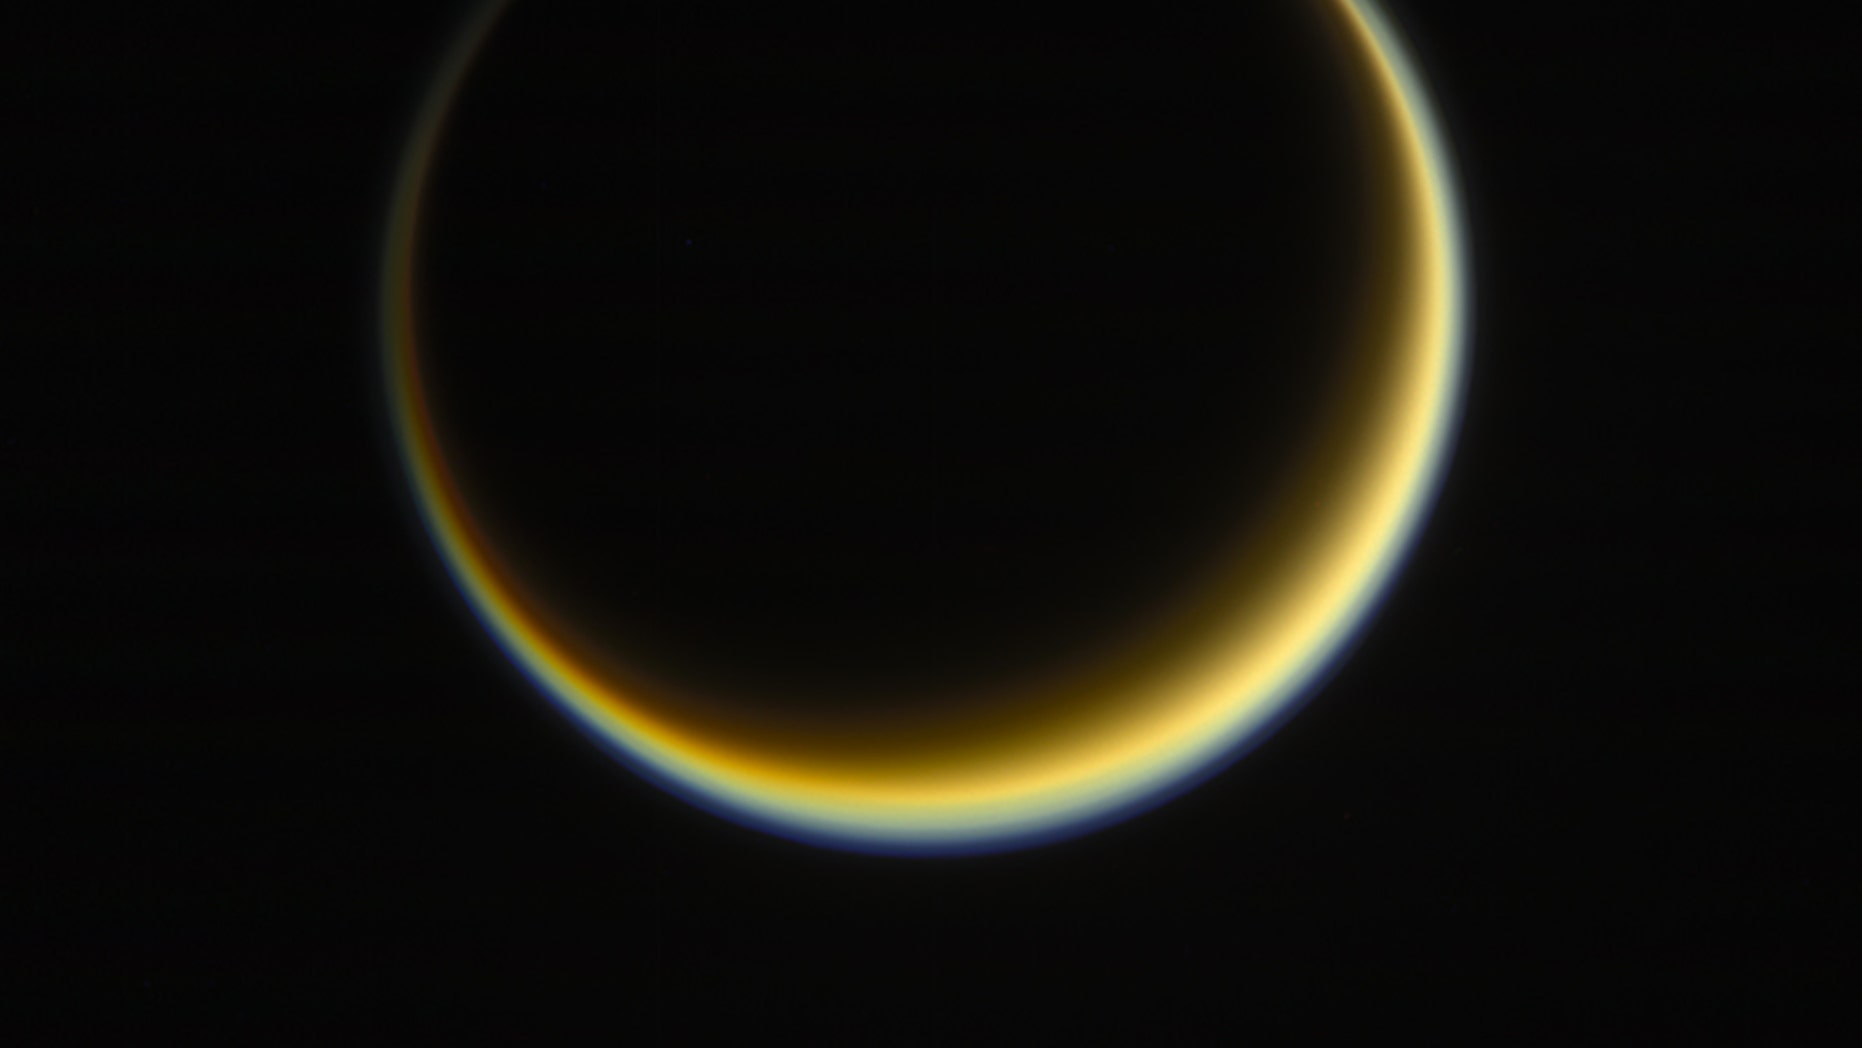 When Titan comes directly between a star (the sun) and an observer (the Cassini spacecraft in 2017), its hazy atmosphere becomes easier to study.